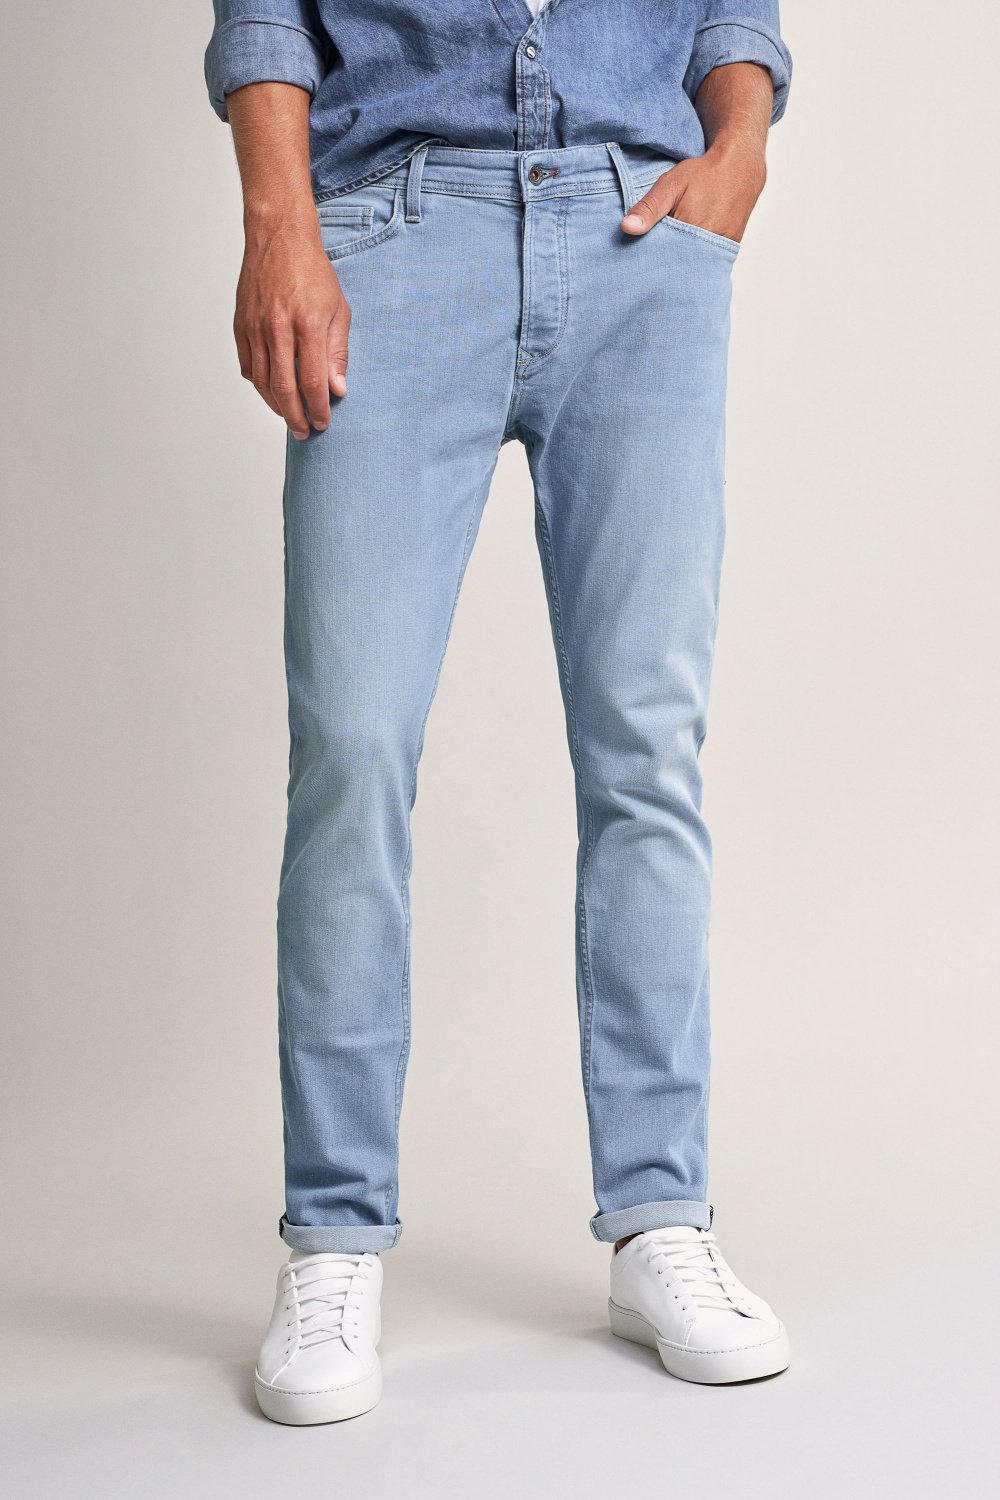 Slender slim carrot rip proof light jeans - Salsa